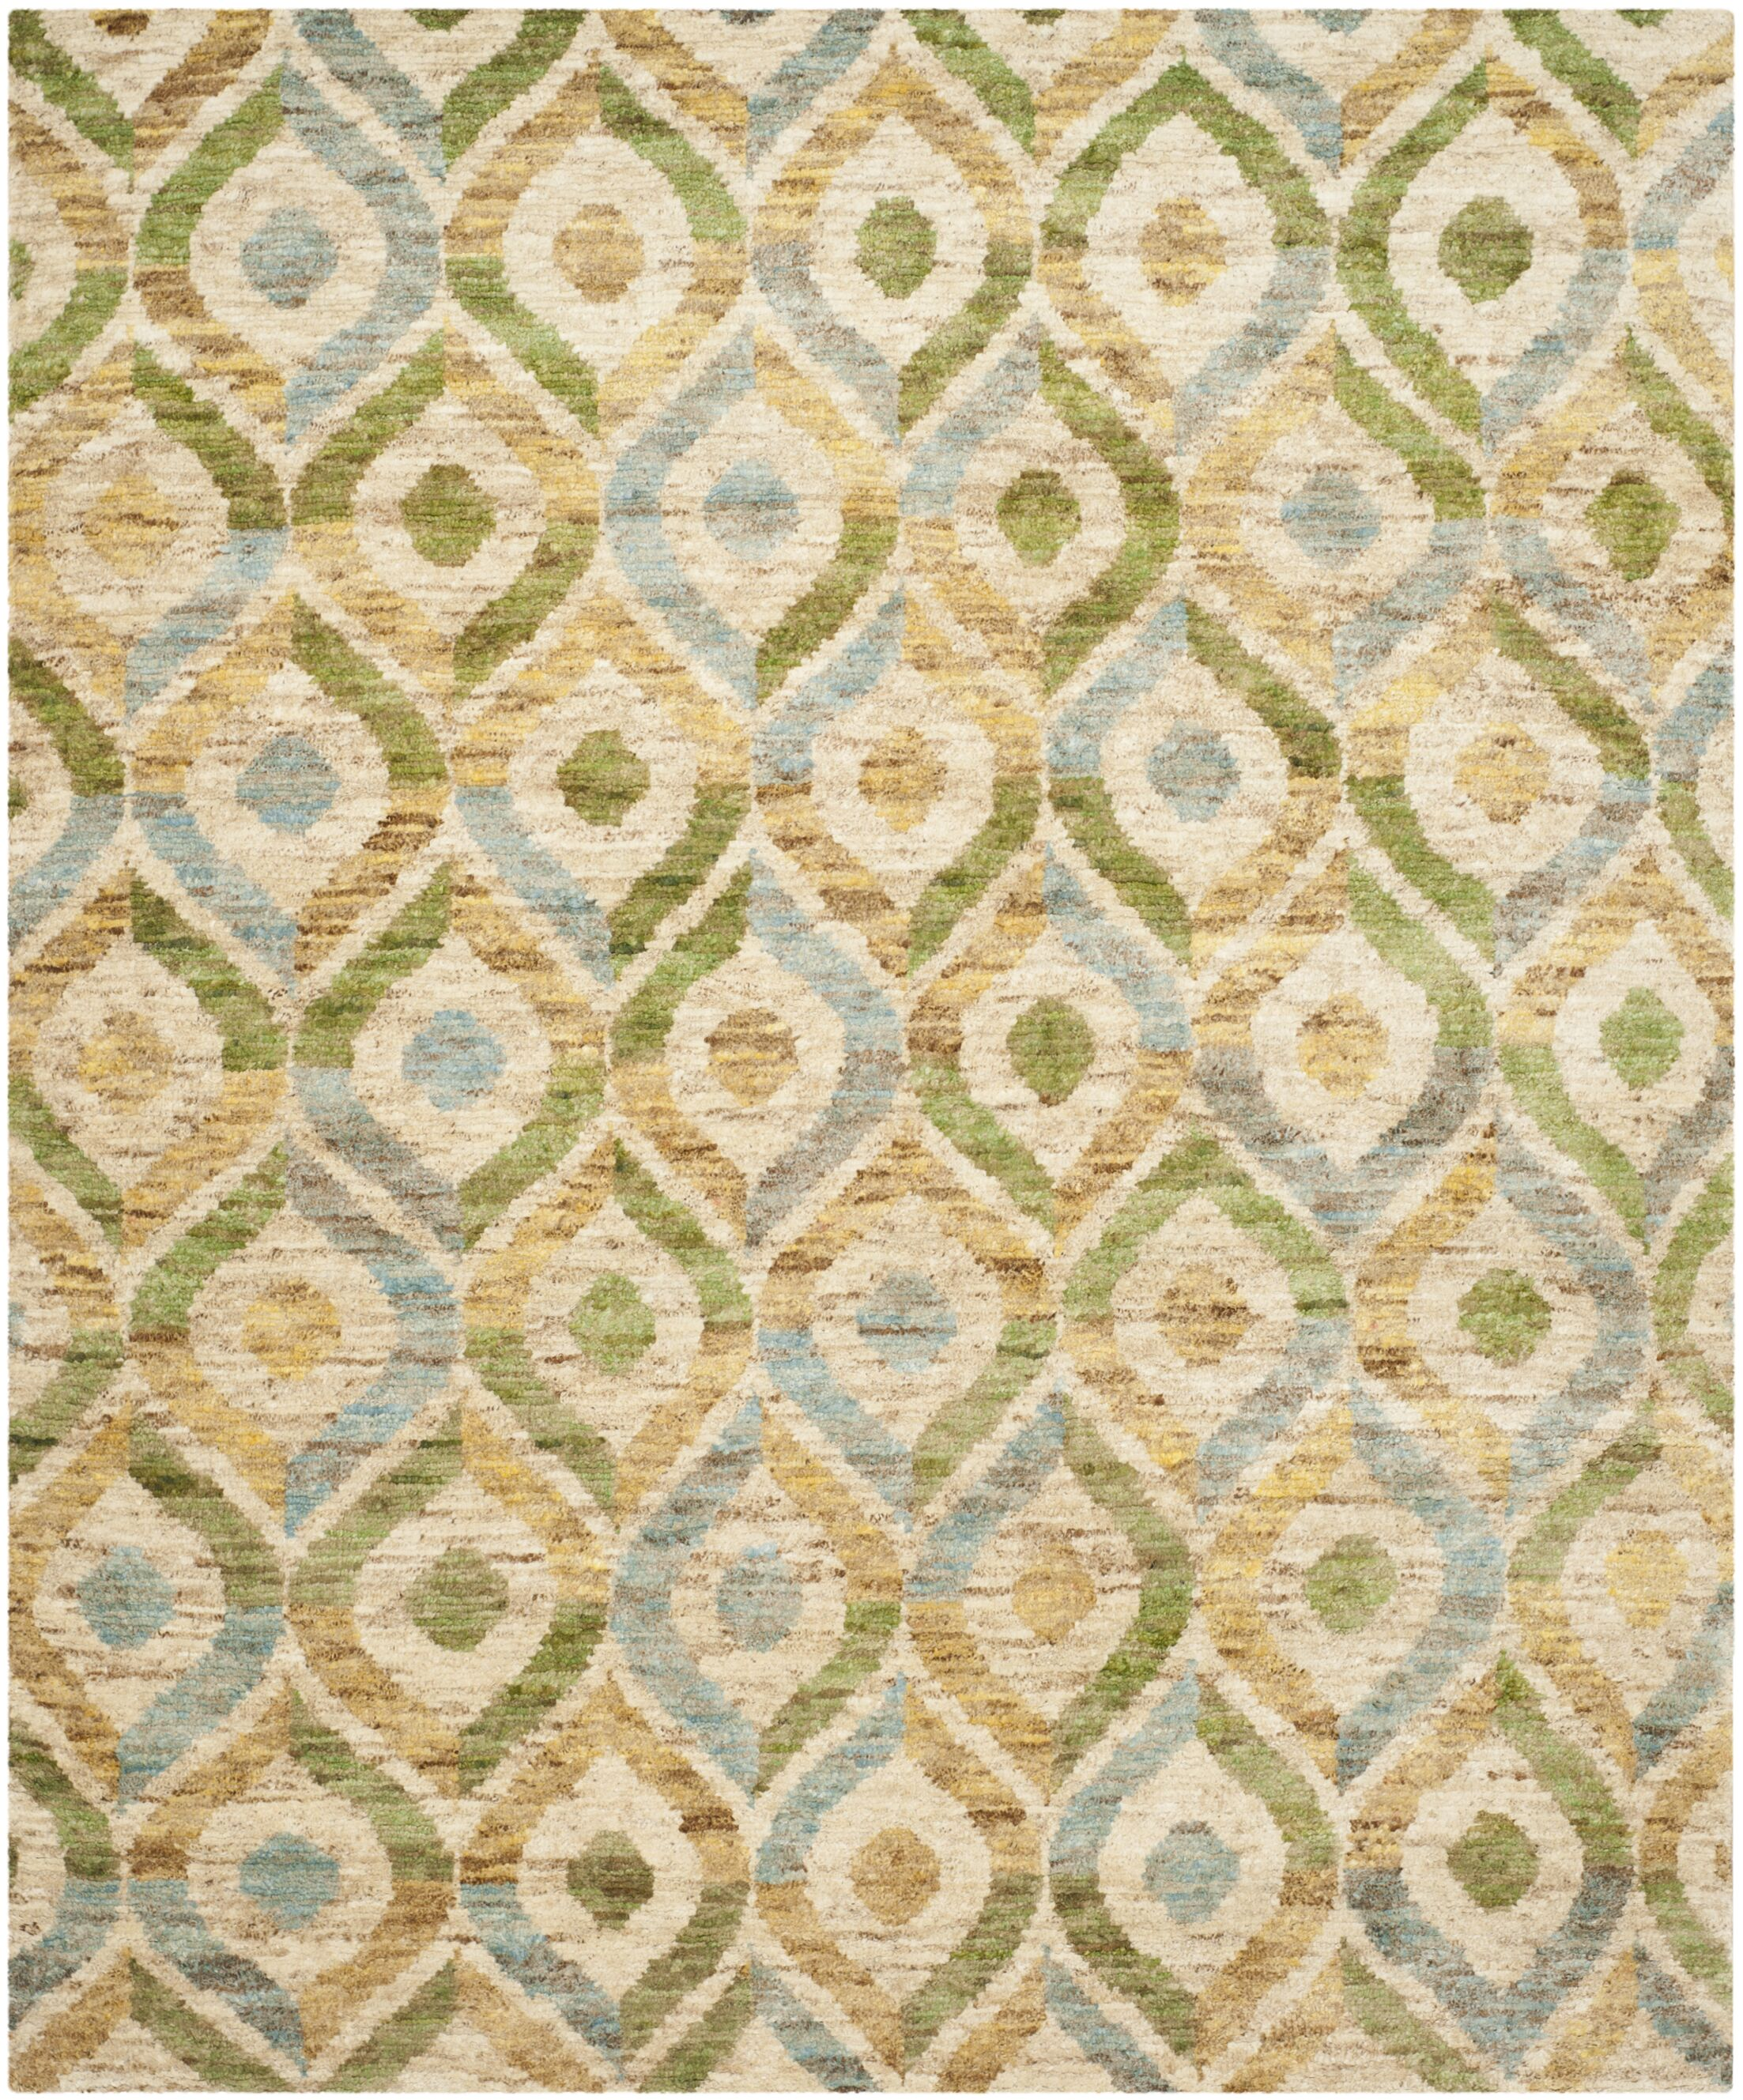 Pinehurst Contemporary Hand-Knotted Beige/Blue Area Rug Rug Size: Rectangle 8' x 10'